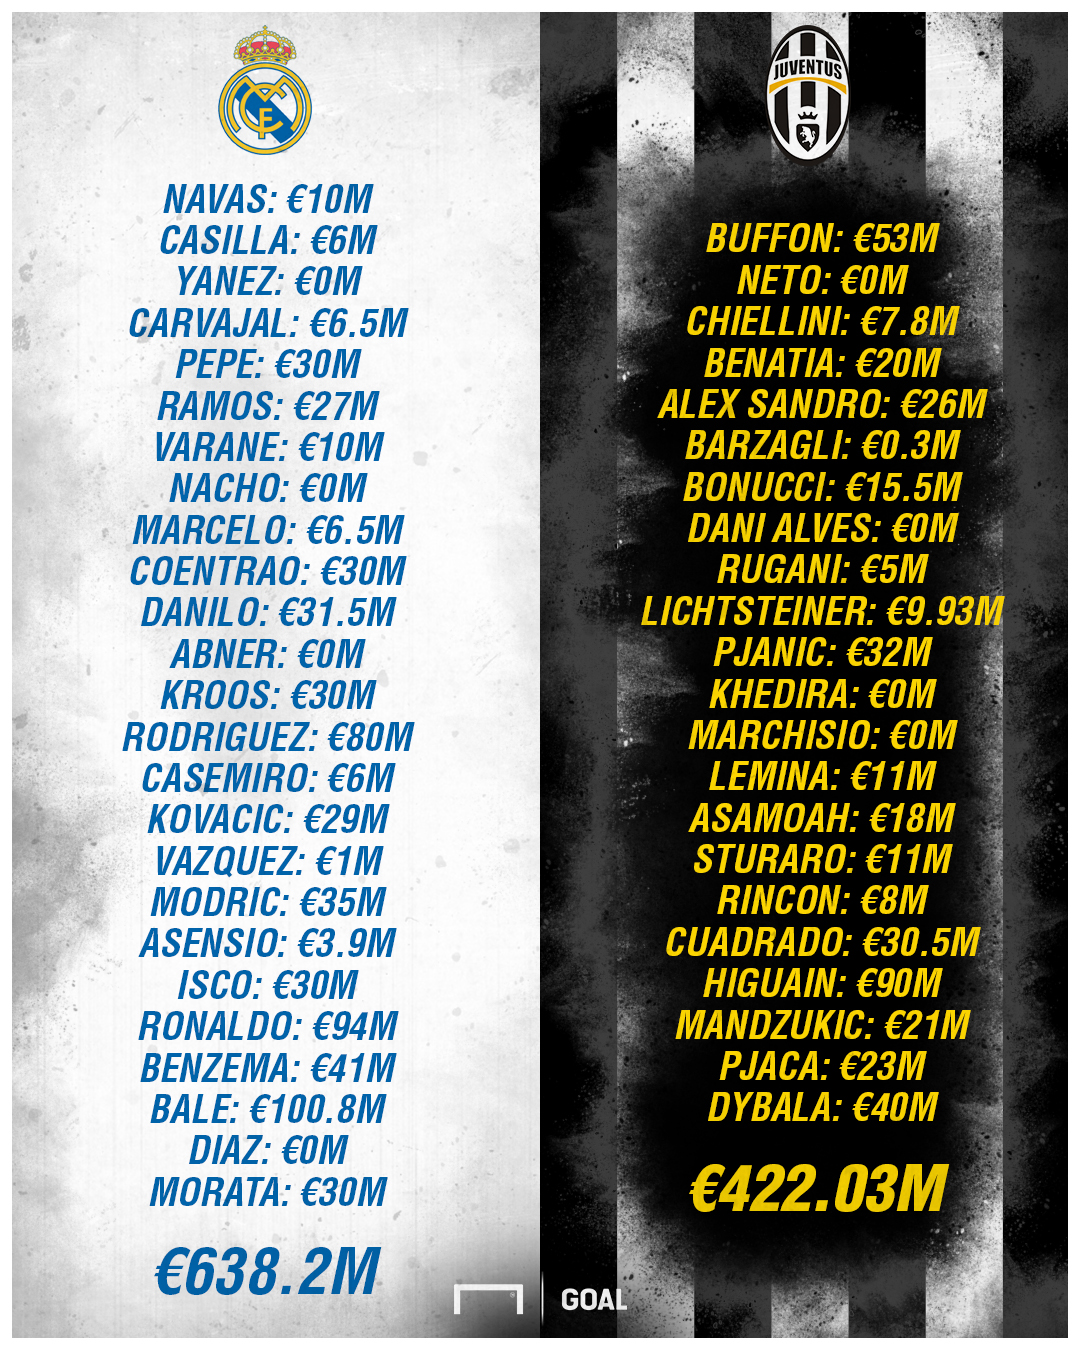 Juve and Madrid squad costs